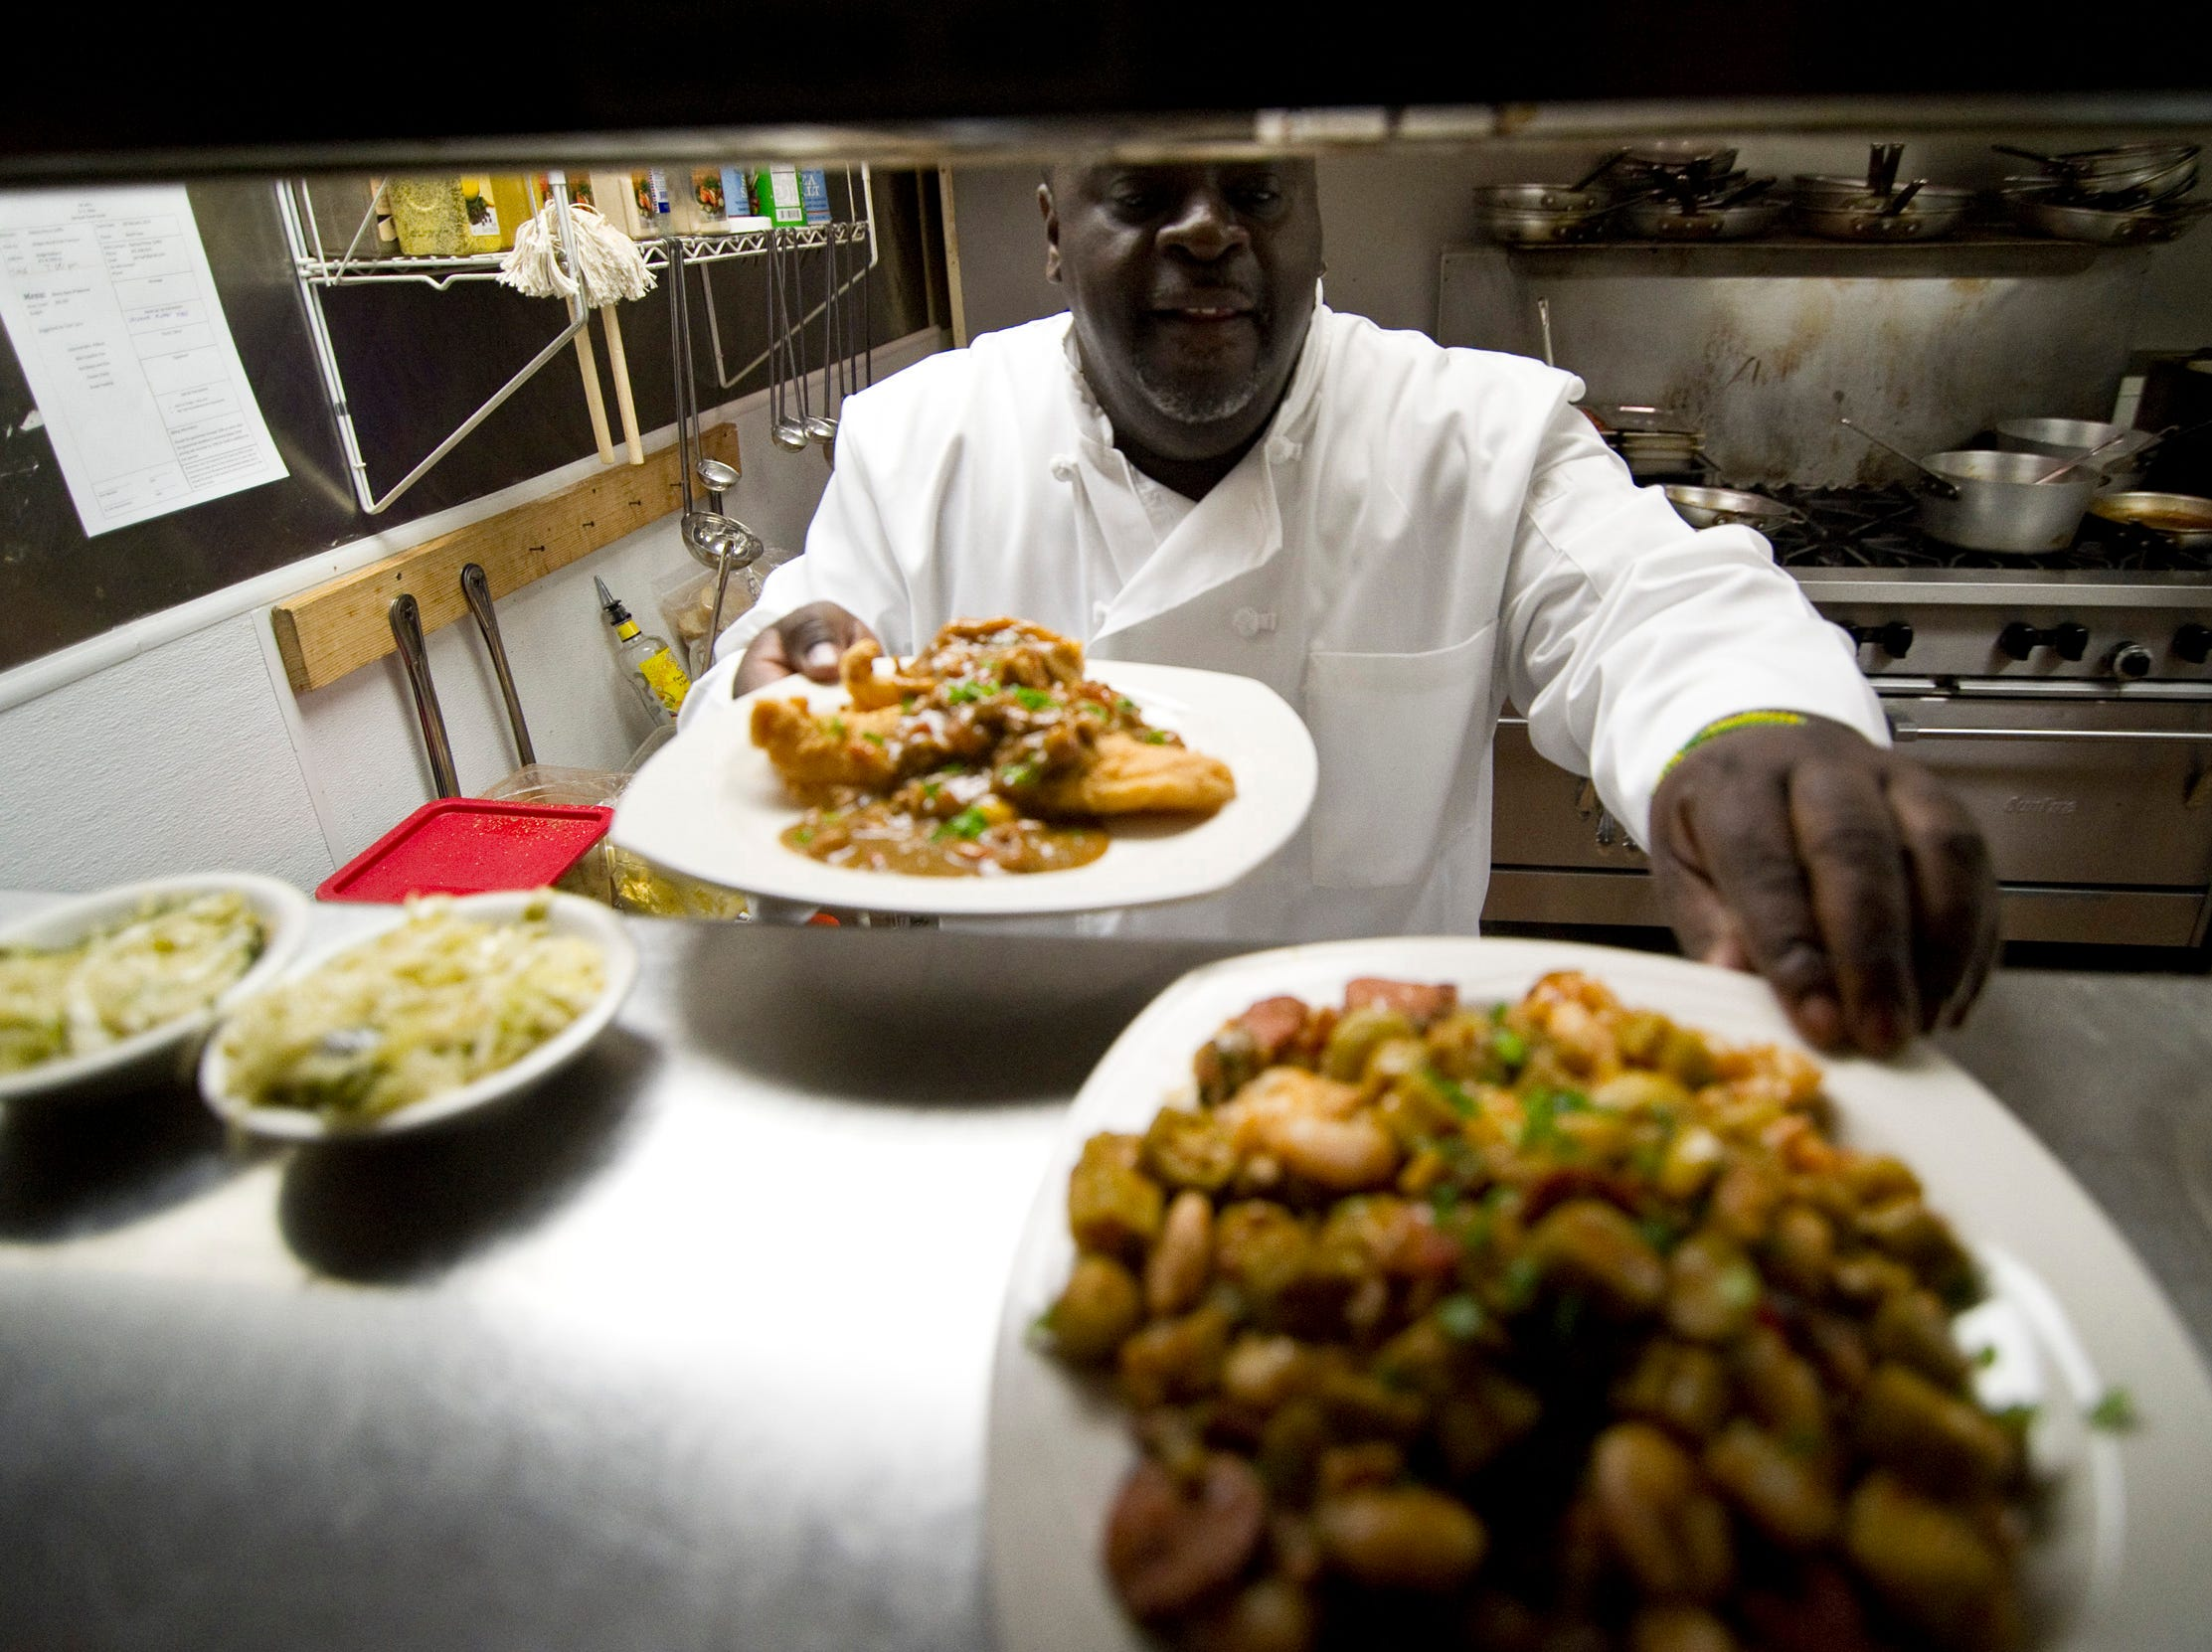 Feb 21, 2014 - DejaVu Chef Gary Williams passes plates from the kitchen during lunch at his restaurant's downtown location on South Main St.